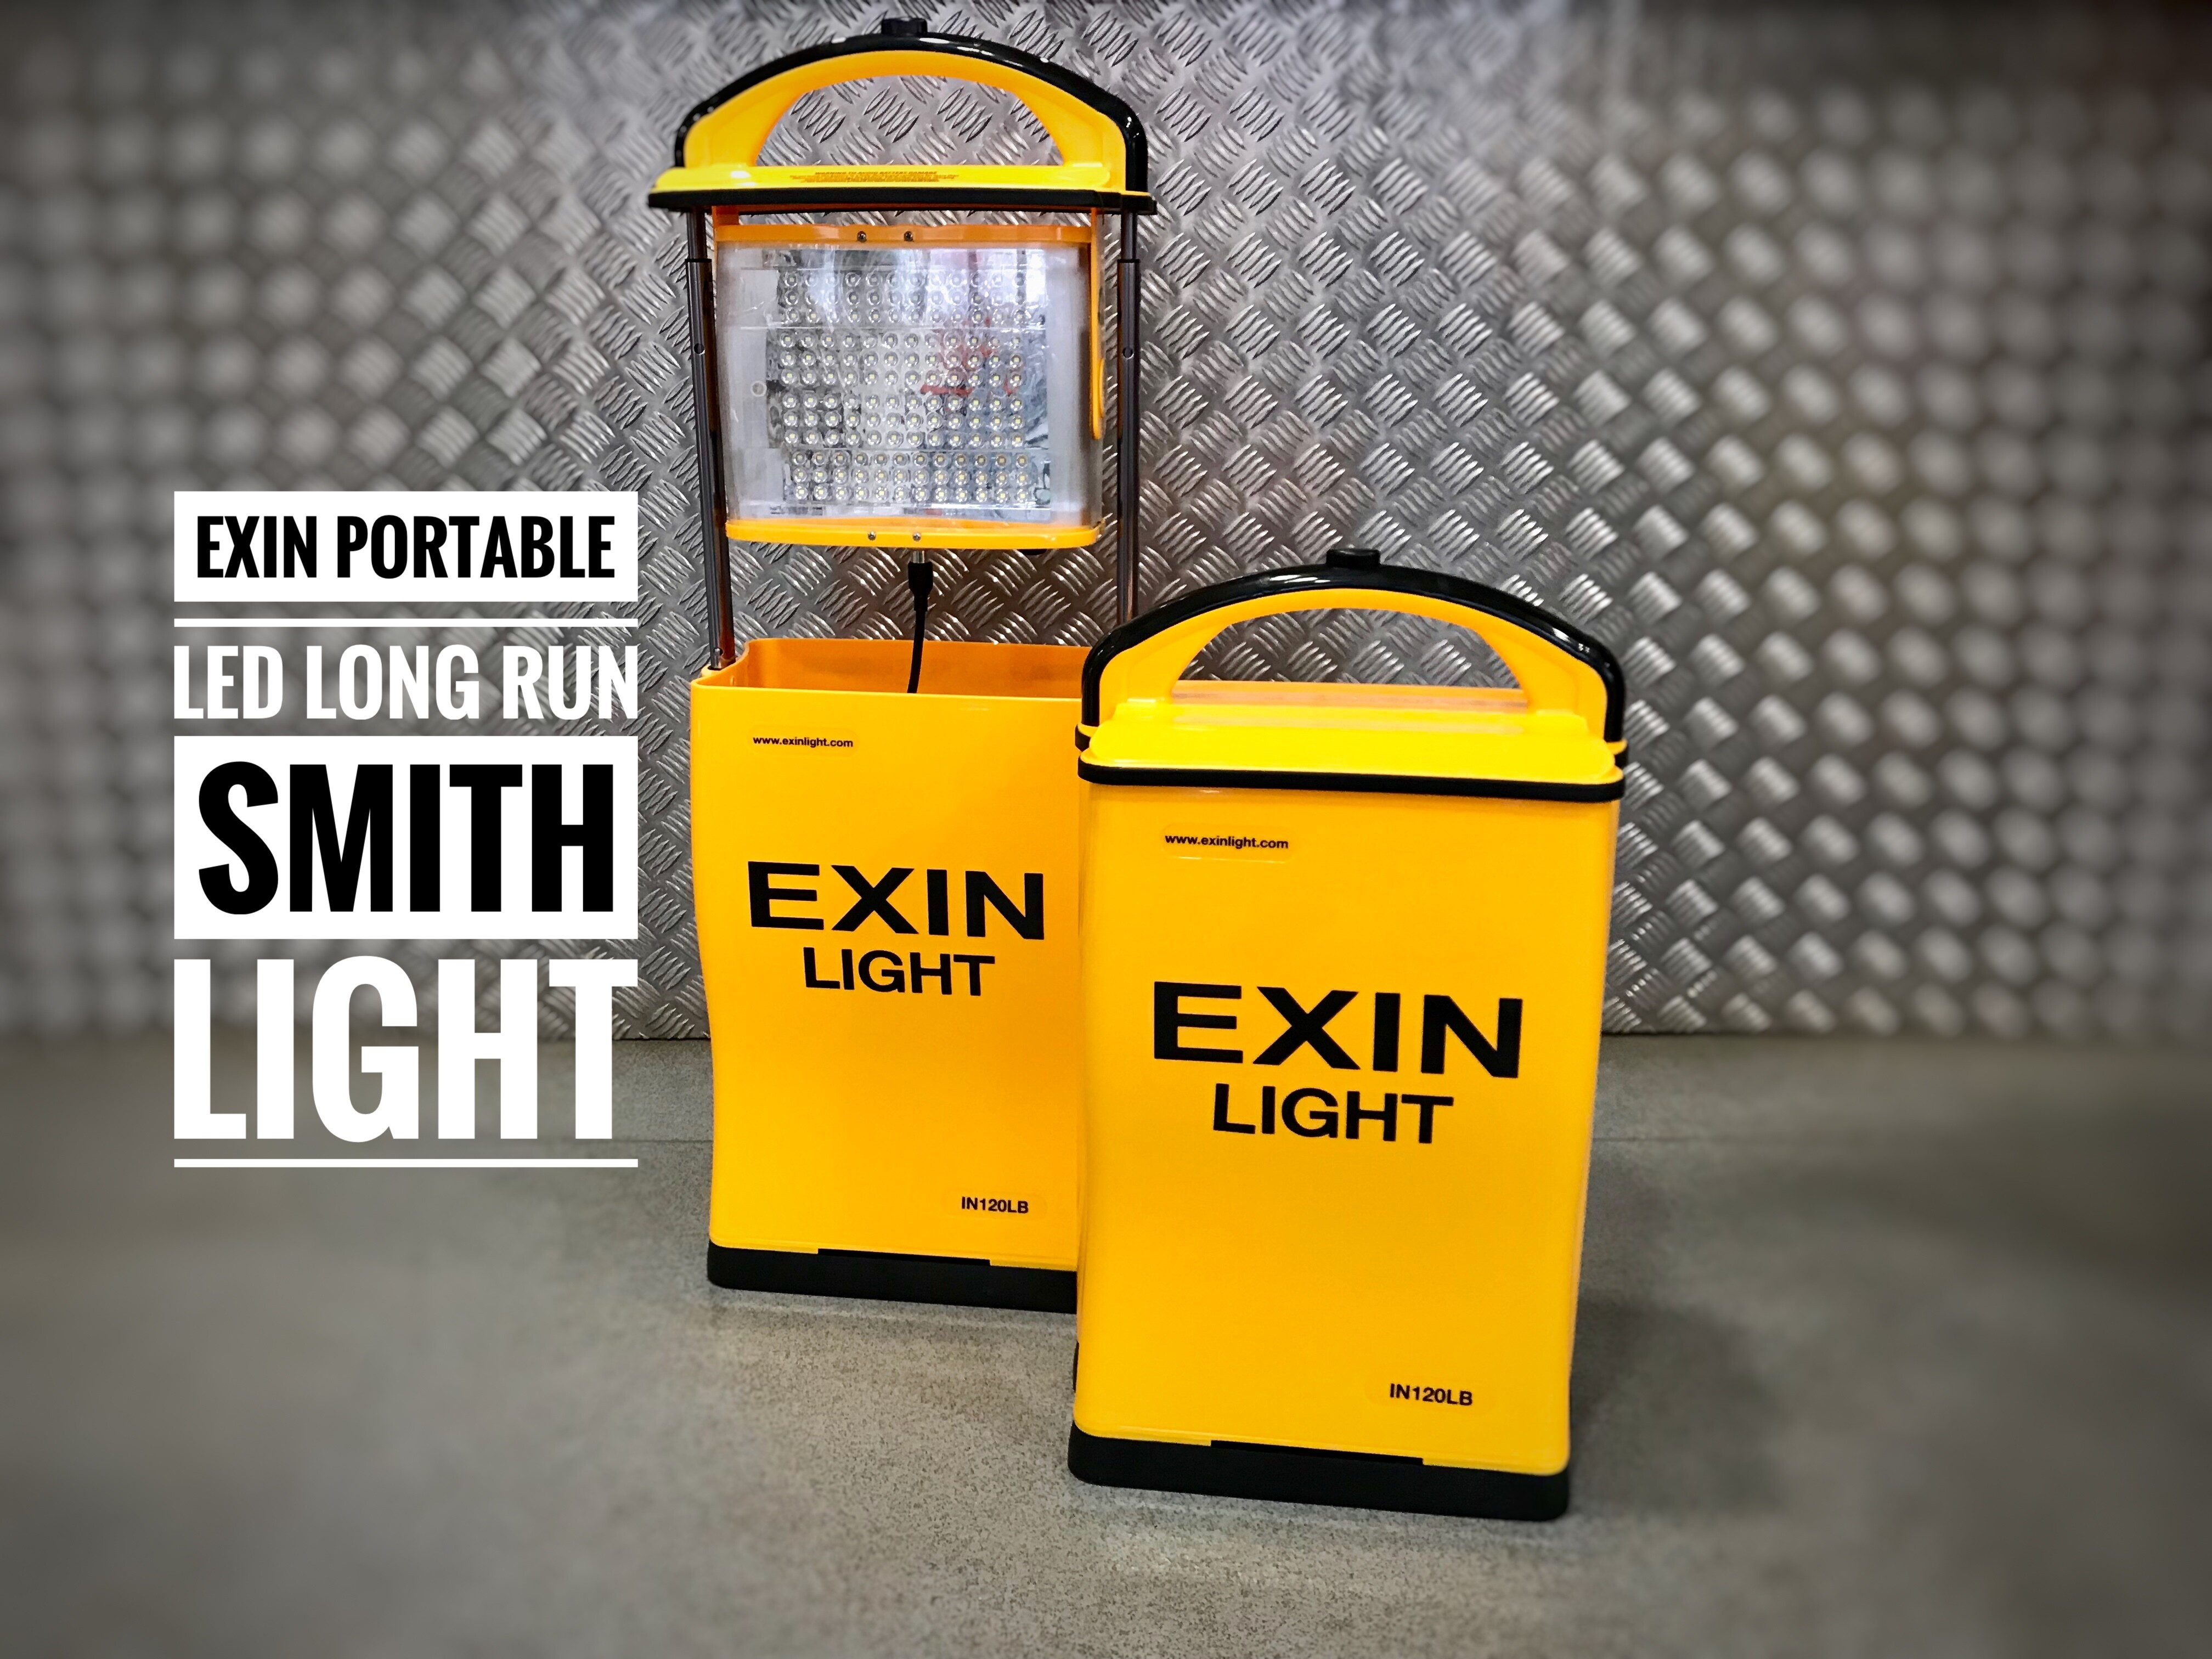 EXIN LED IN120L BATTERY DOUBLE SIDED LIGHT